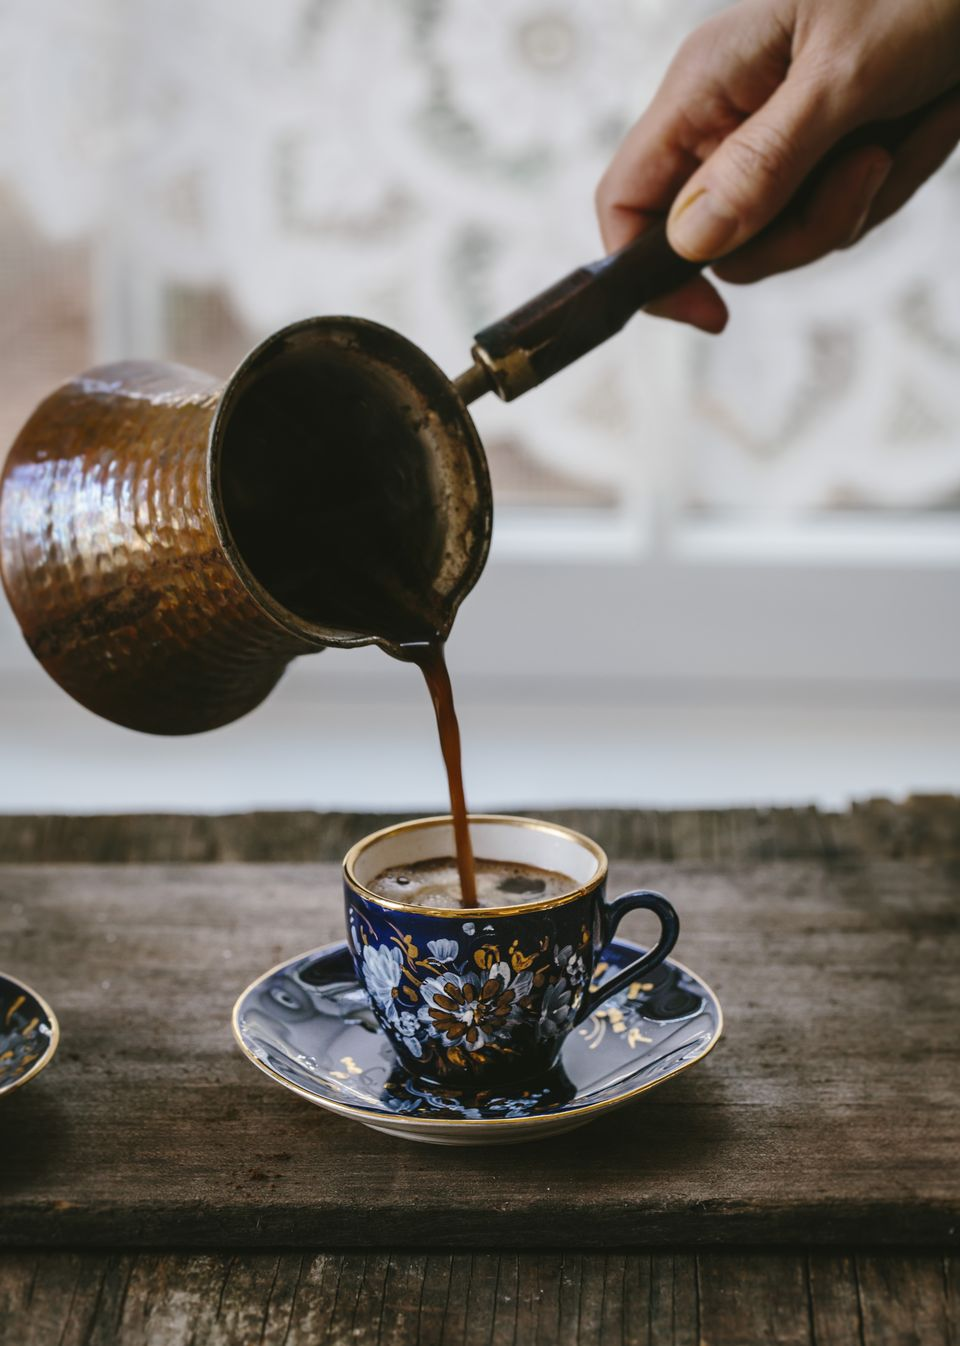 Qahwa or Turkish coffee. Image credit The Picture Pantry.